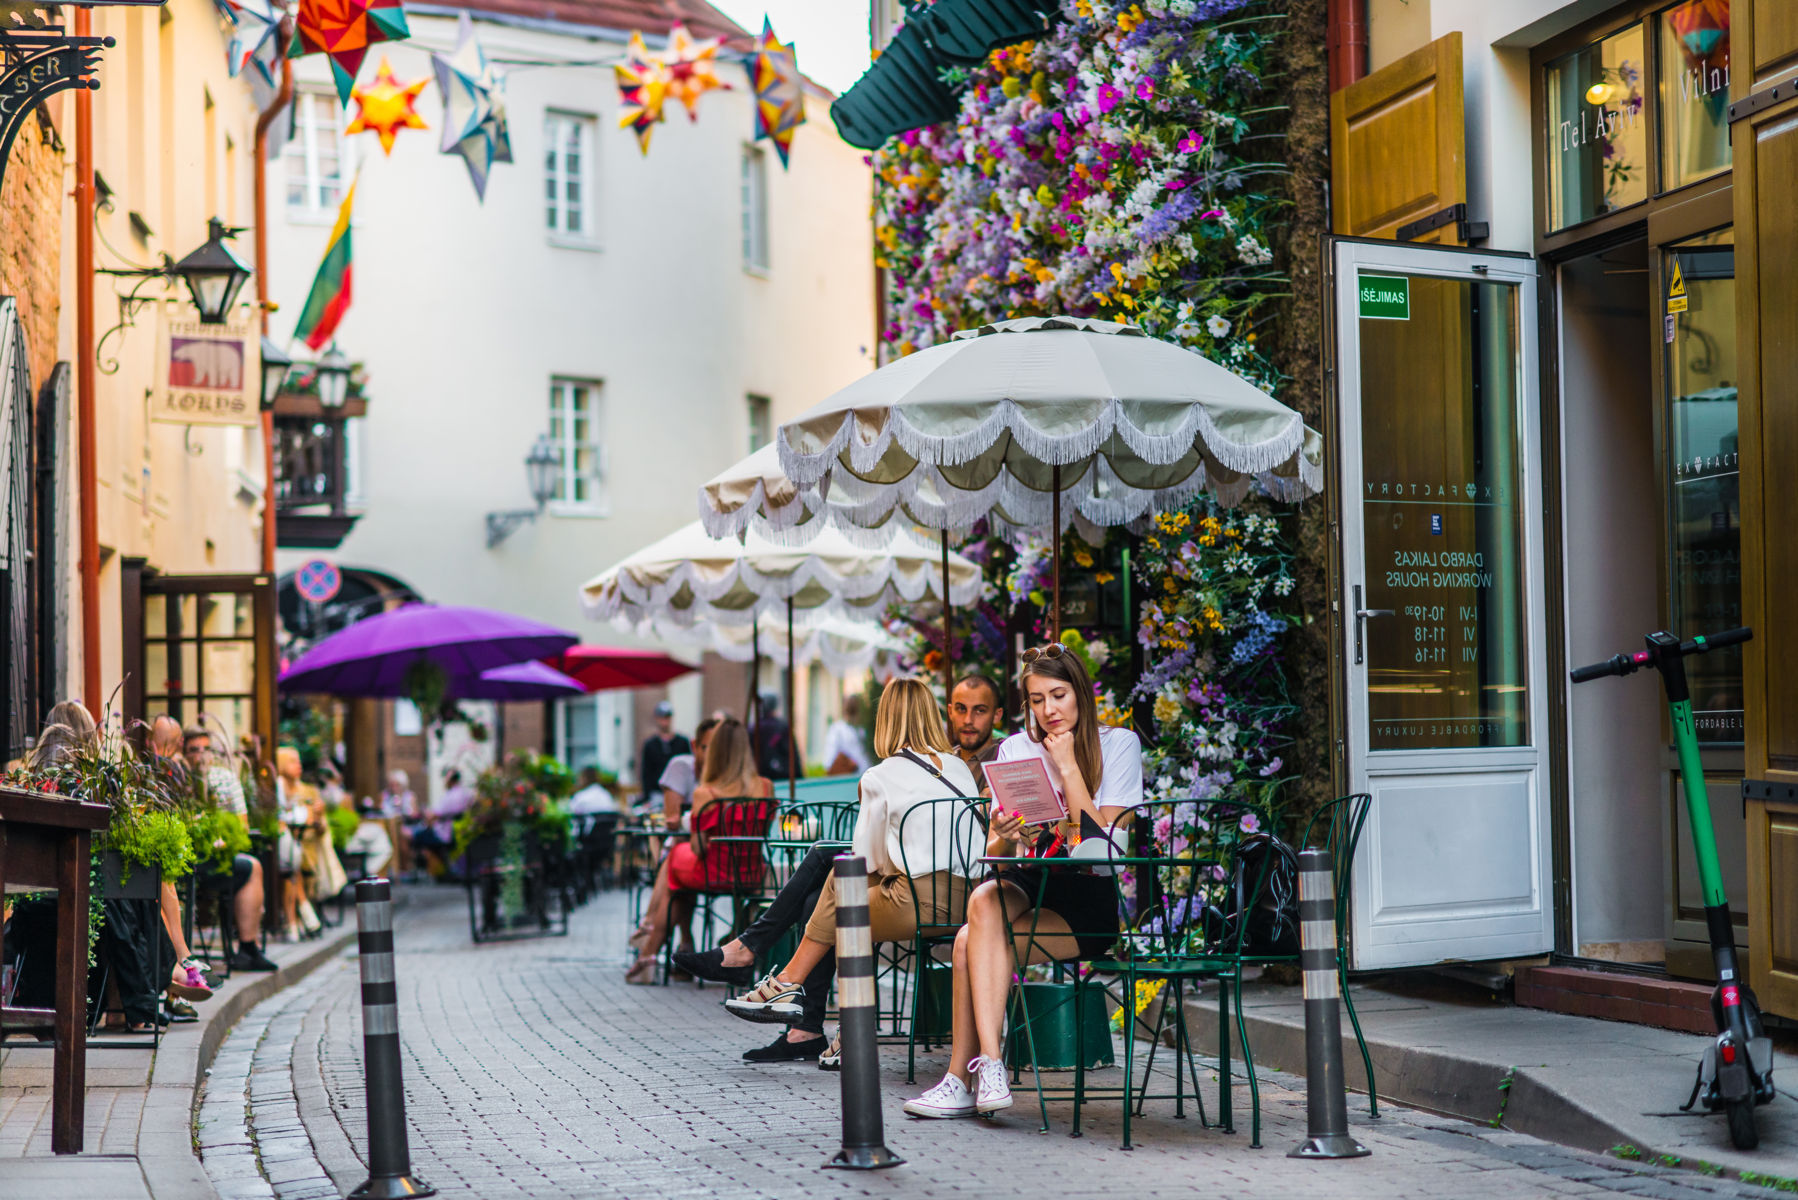 The whole city is an open-air cafe with a UNESCO-listed view